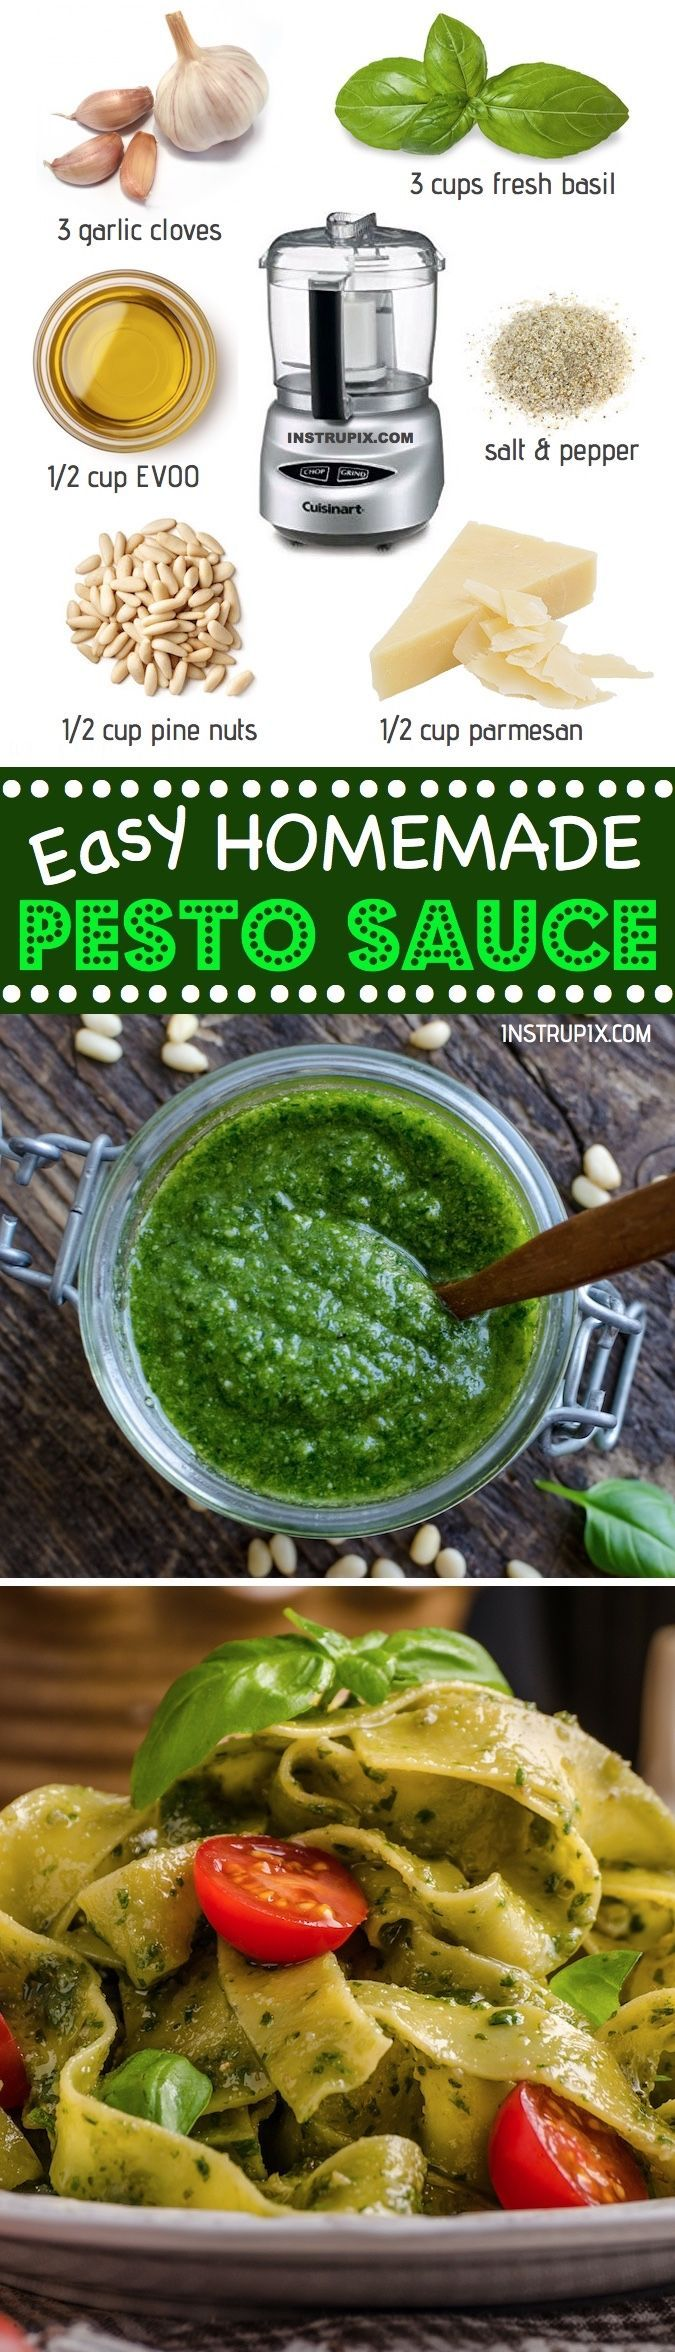 Easy Homemade Basil Pesto Sauce Recipe | For dinner, pasta, chicken, dips, spreads and more! Healthy and made with just a few simple ingredients. Make it vegan by leaving out the parmesan. Instrupix.com